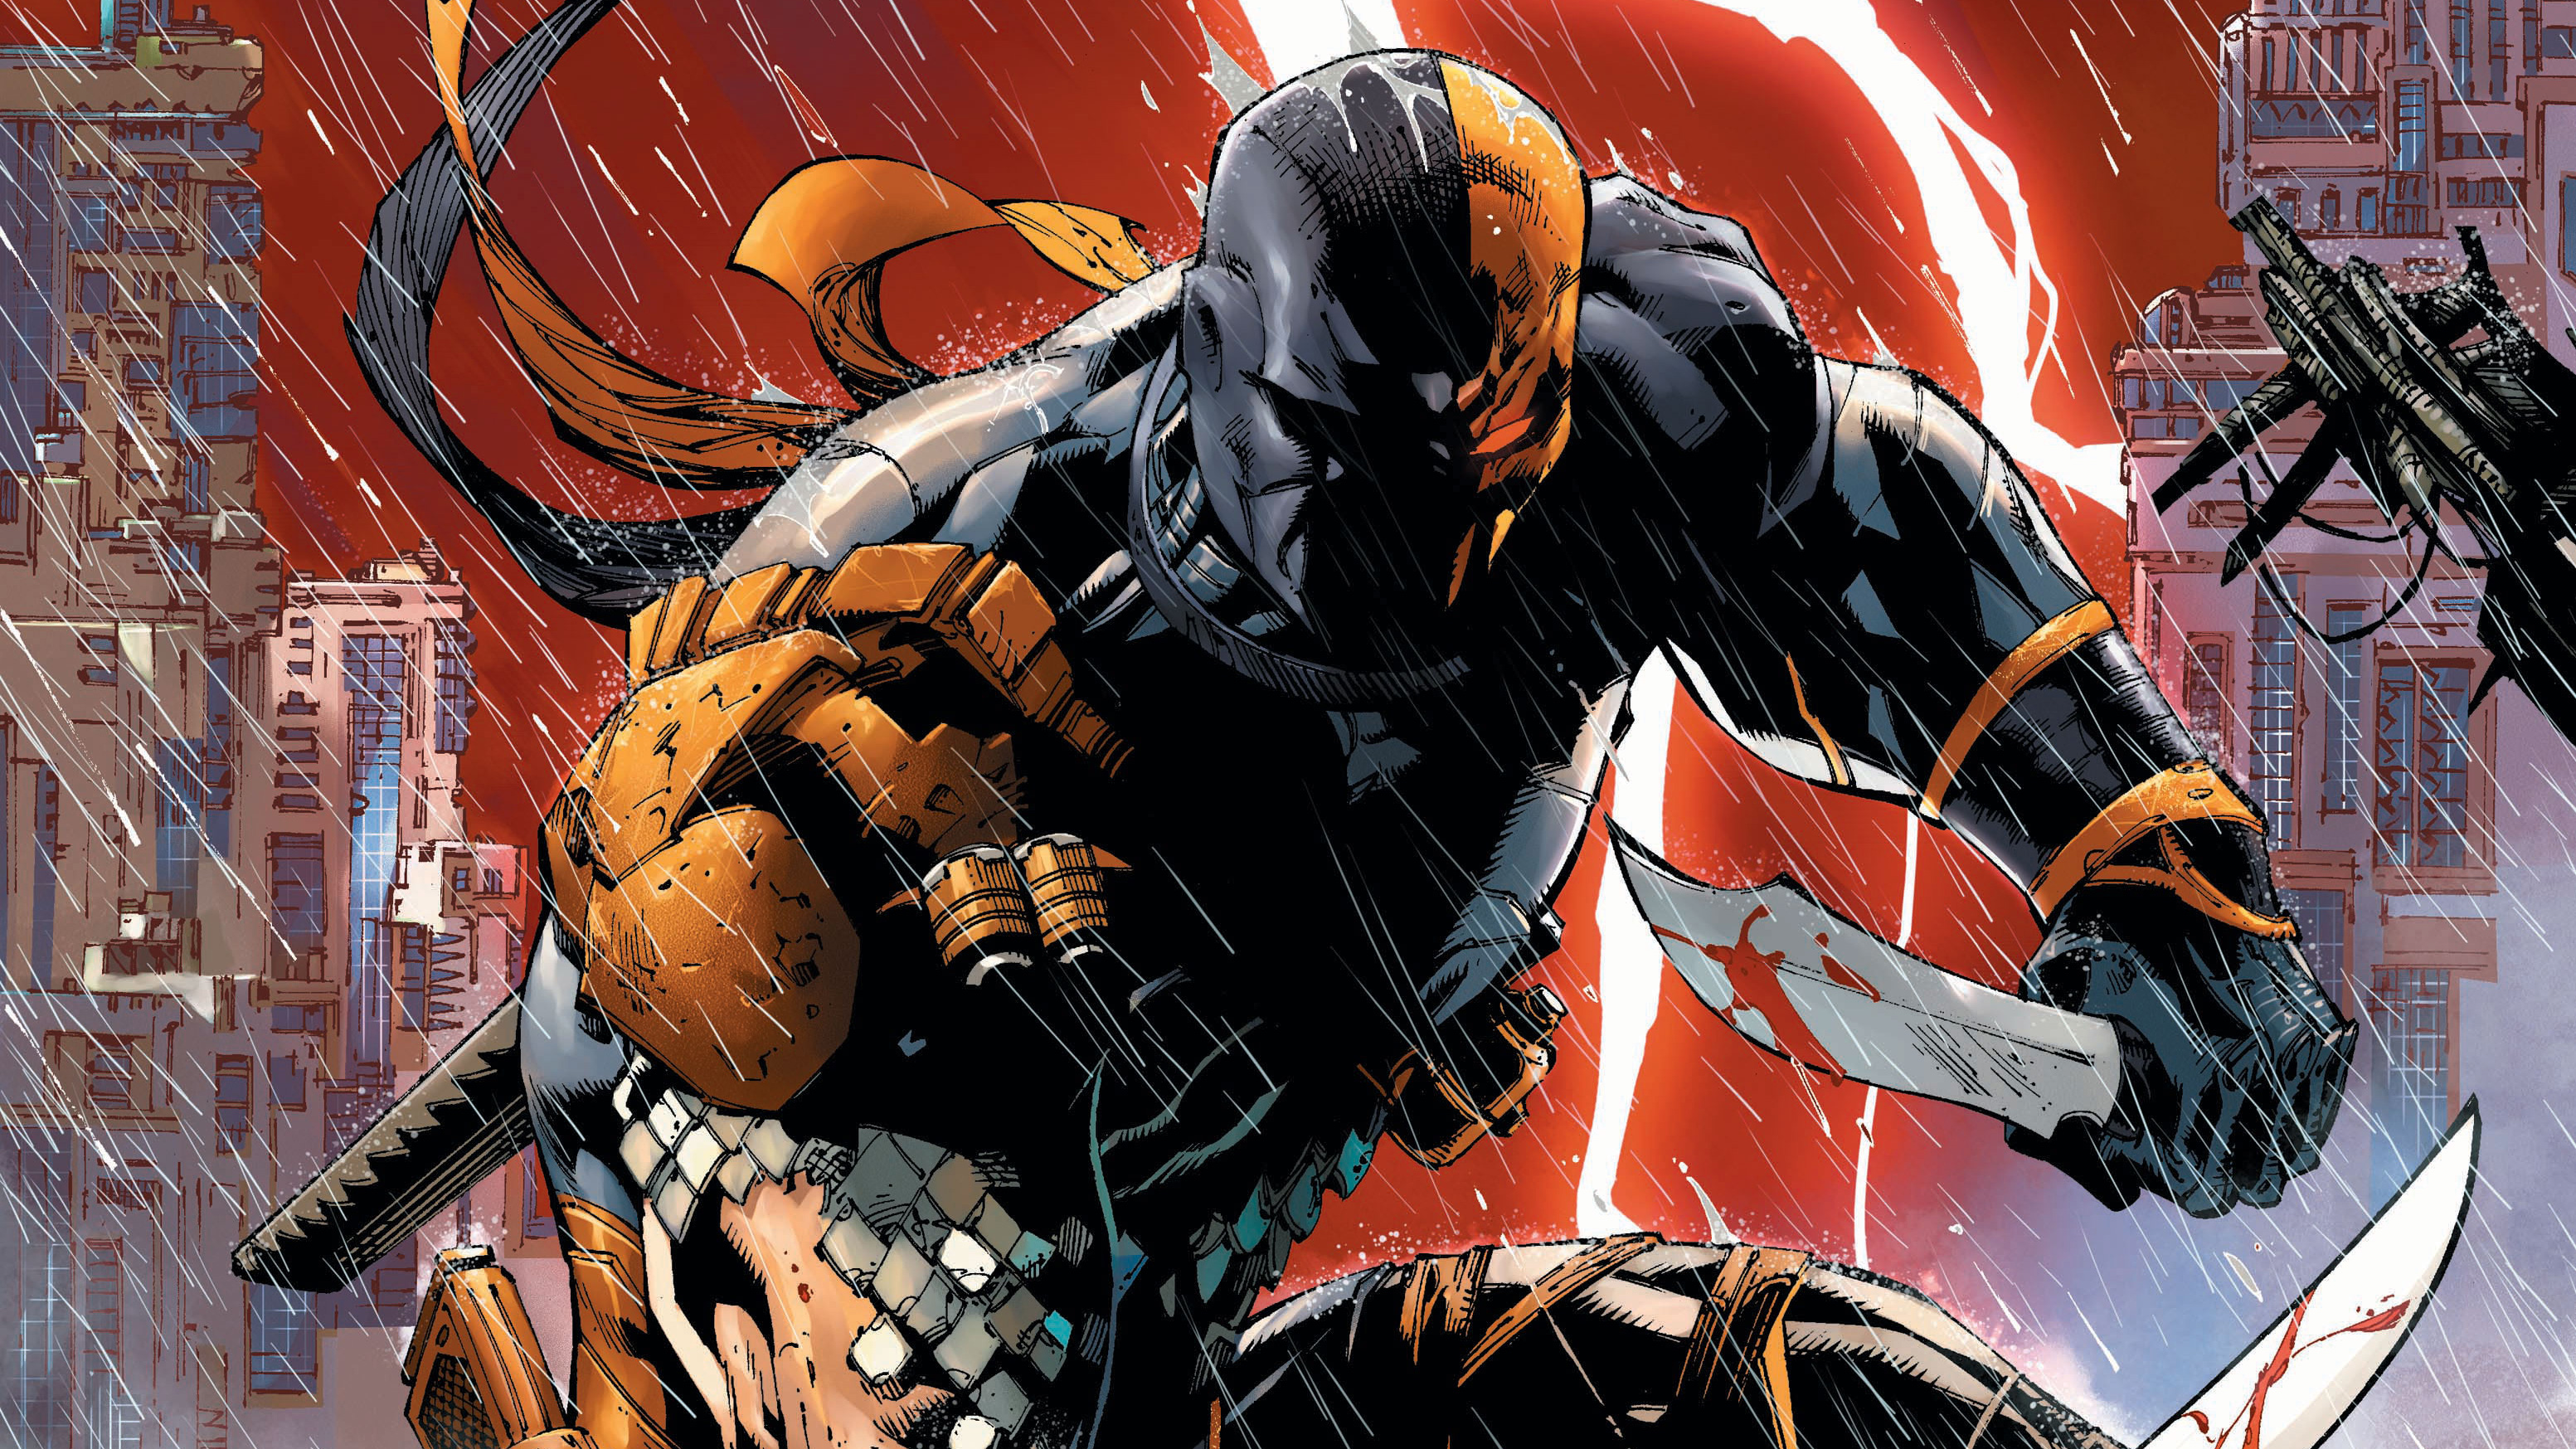 deathstroke comic artwork 4k 1548527305 - Deathstroke Comic Artwork 4k - supervillain wallpapers, hd-wallpapers, fictional character wallpapers, digital art wallpapers, deathstroke wallpapers, artwork wallpapers, artist wallpapers